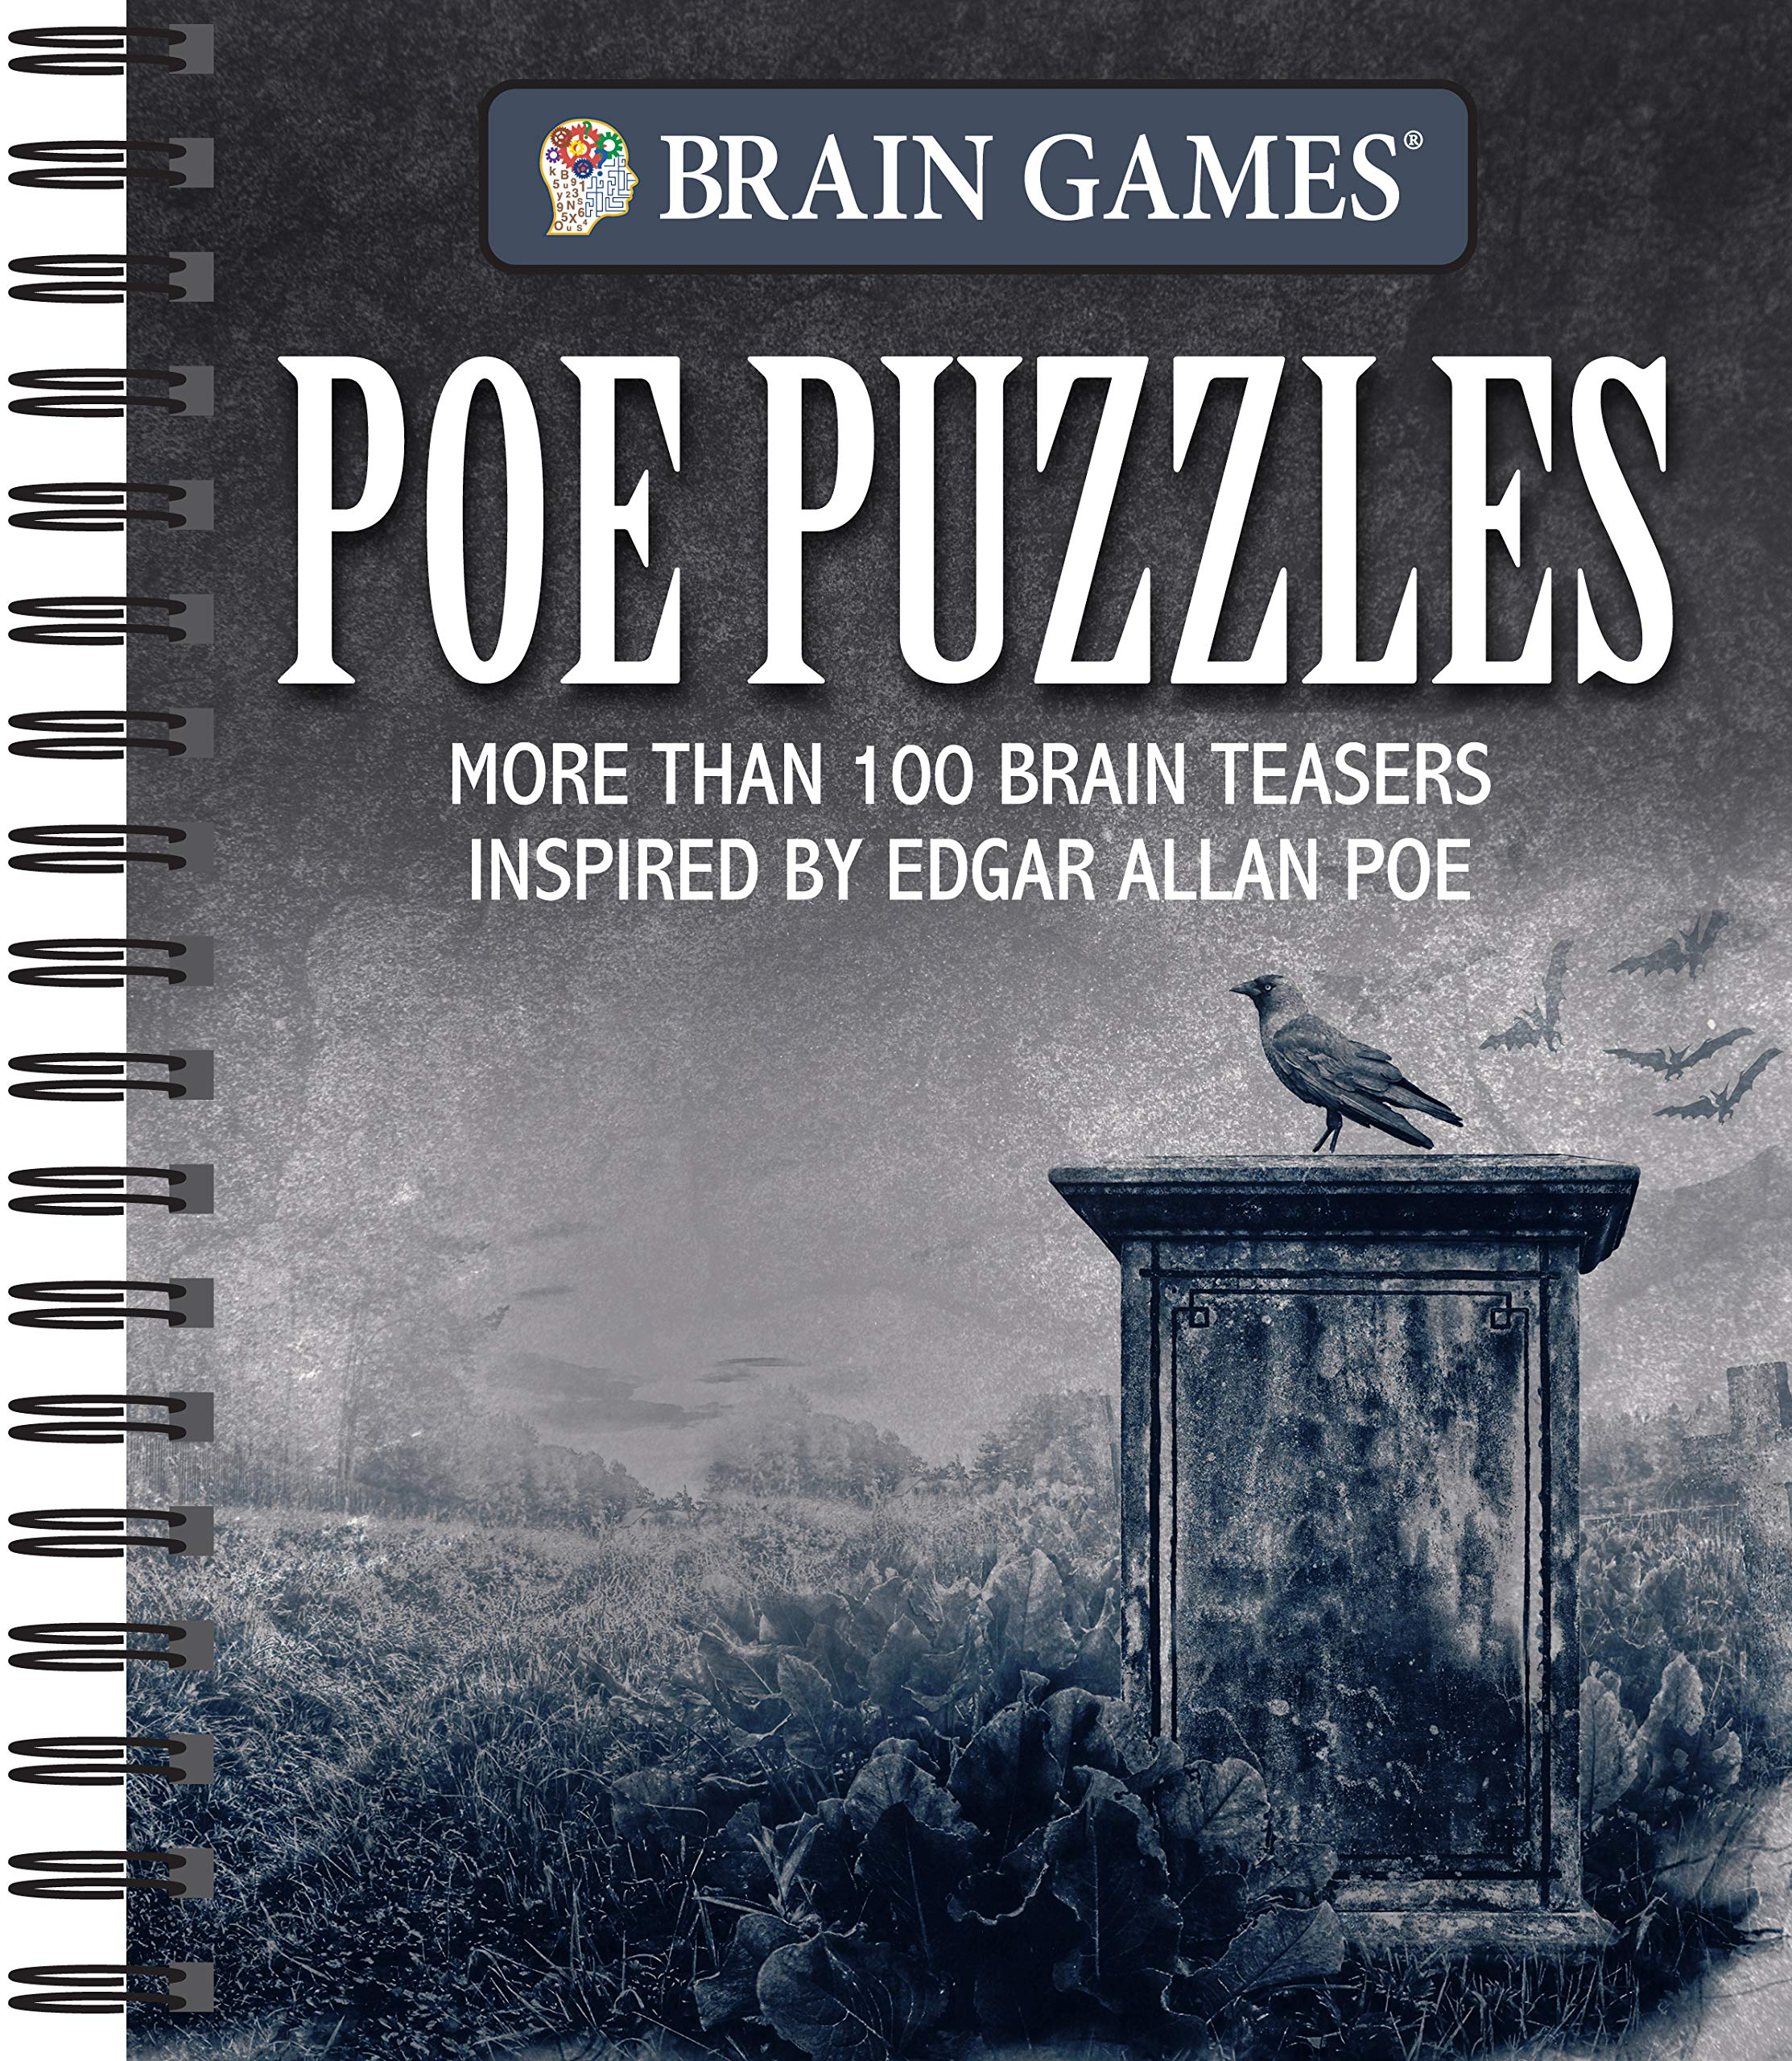 Brain Games Poe Puzzles More Than 100 Brain Teasers Inspired by Edgar Allen Poe